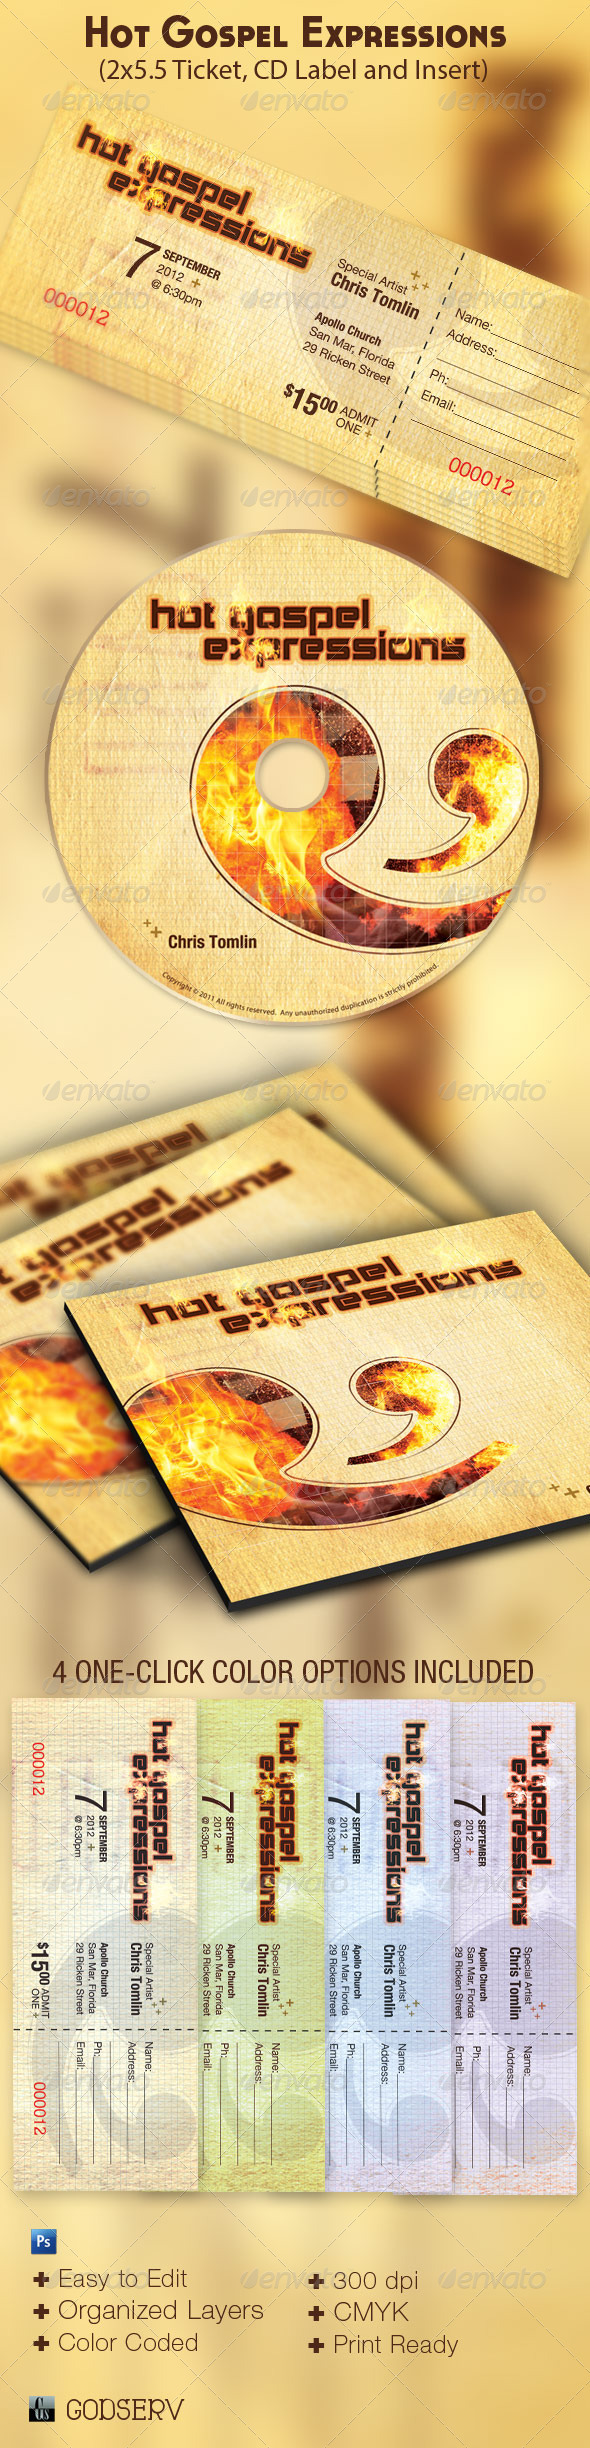 Hot Gospel Expressions Concert Ticket and CD - Miscellaneous Print Templates